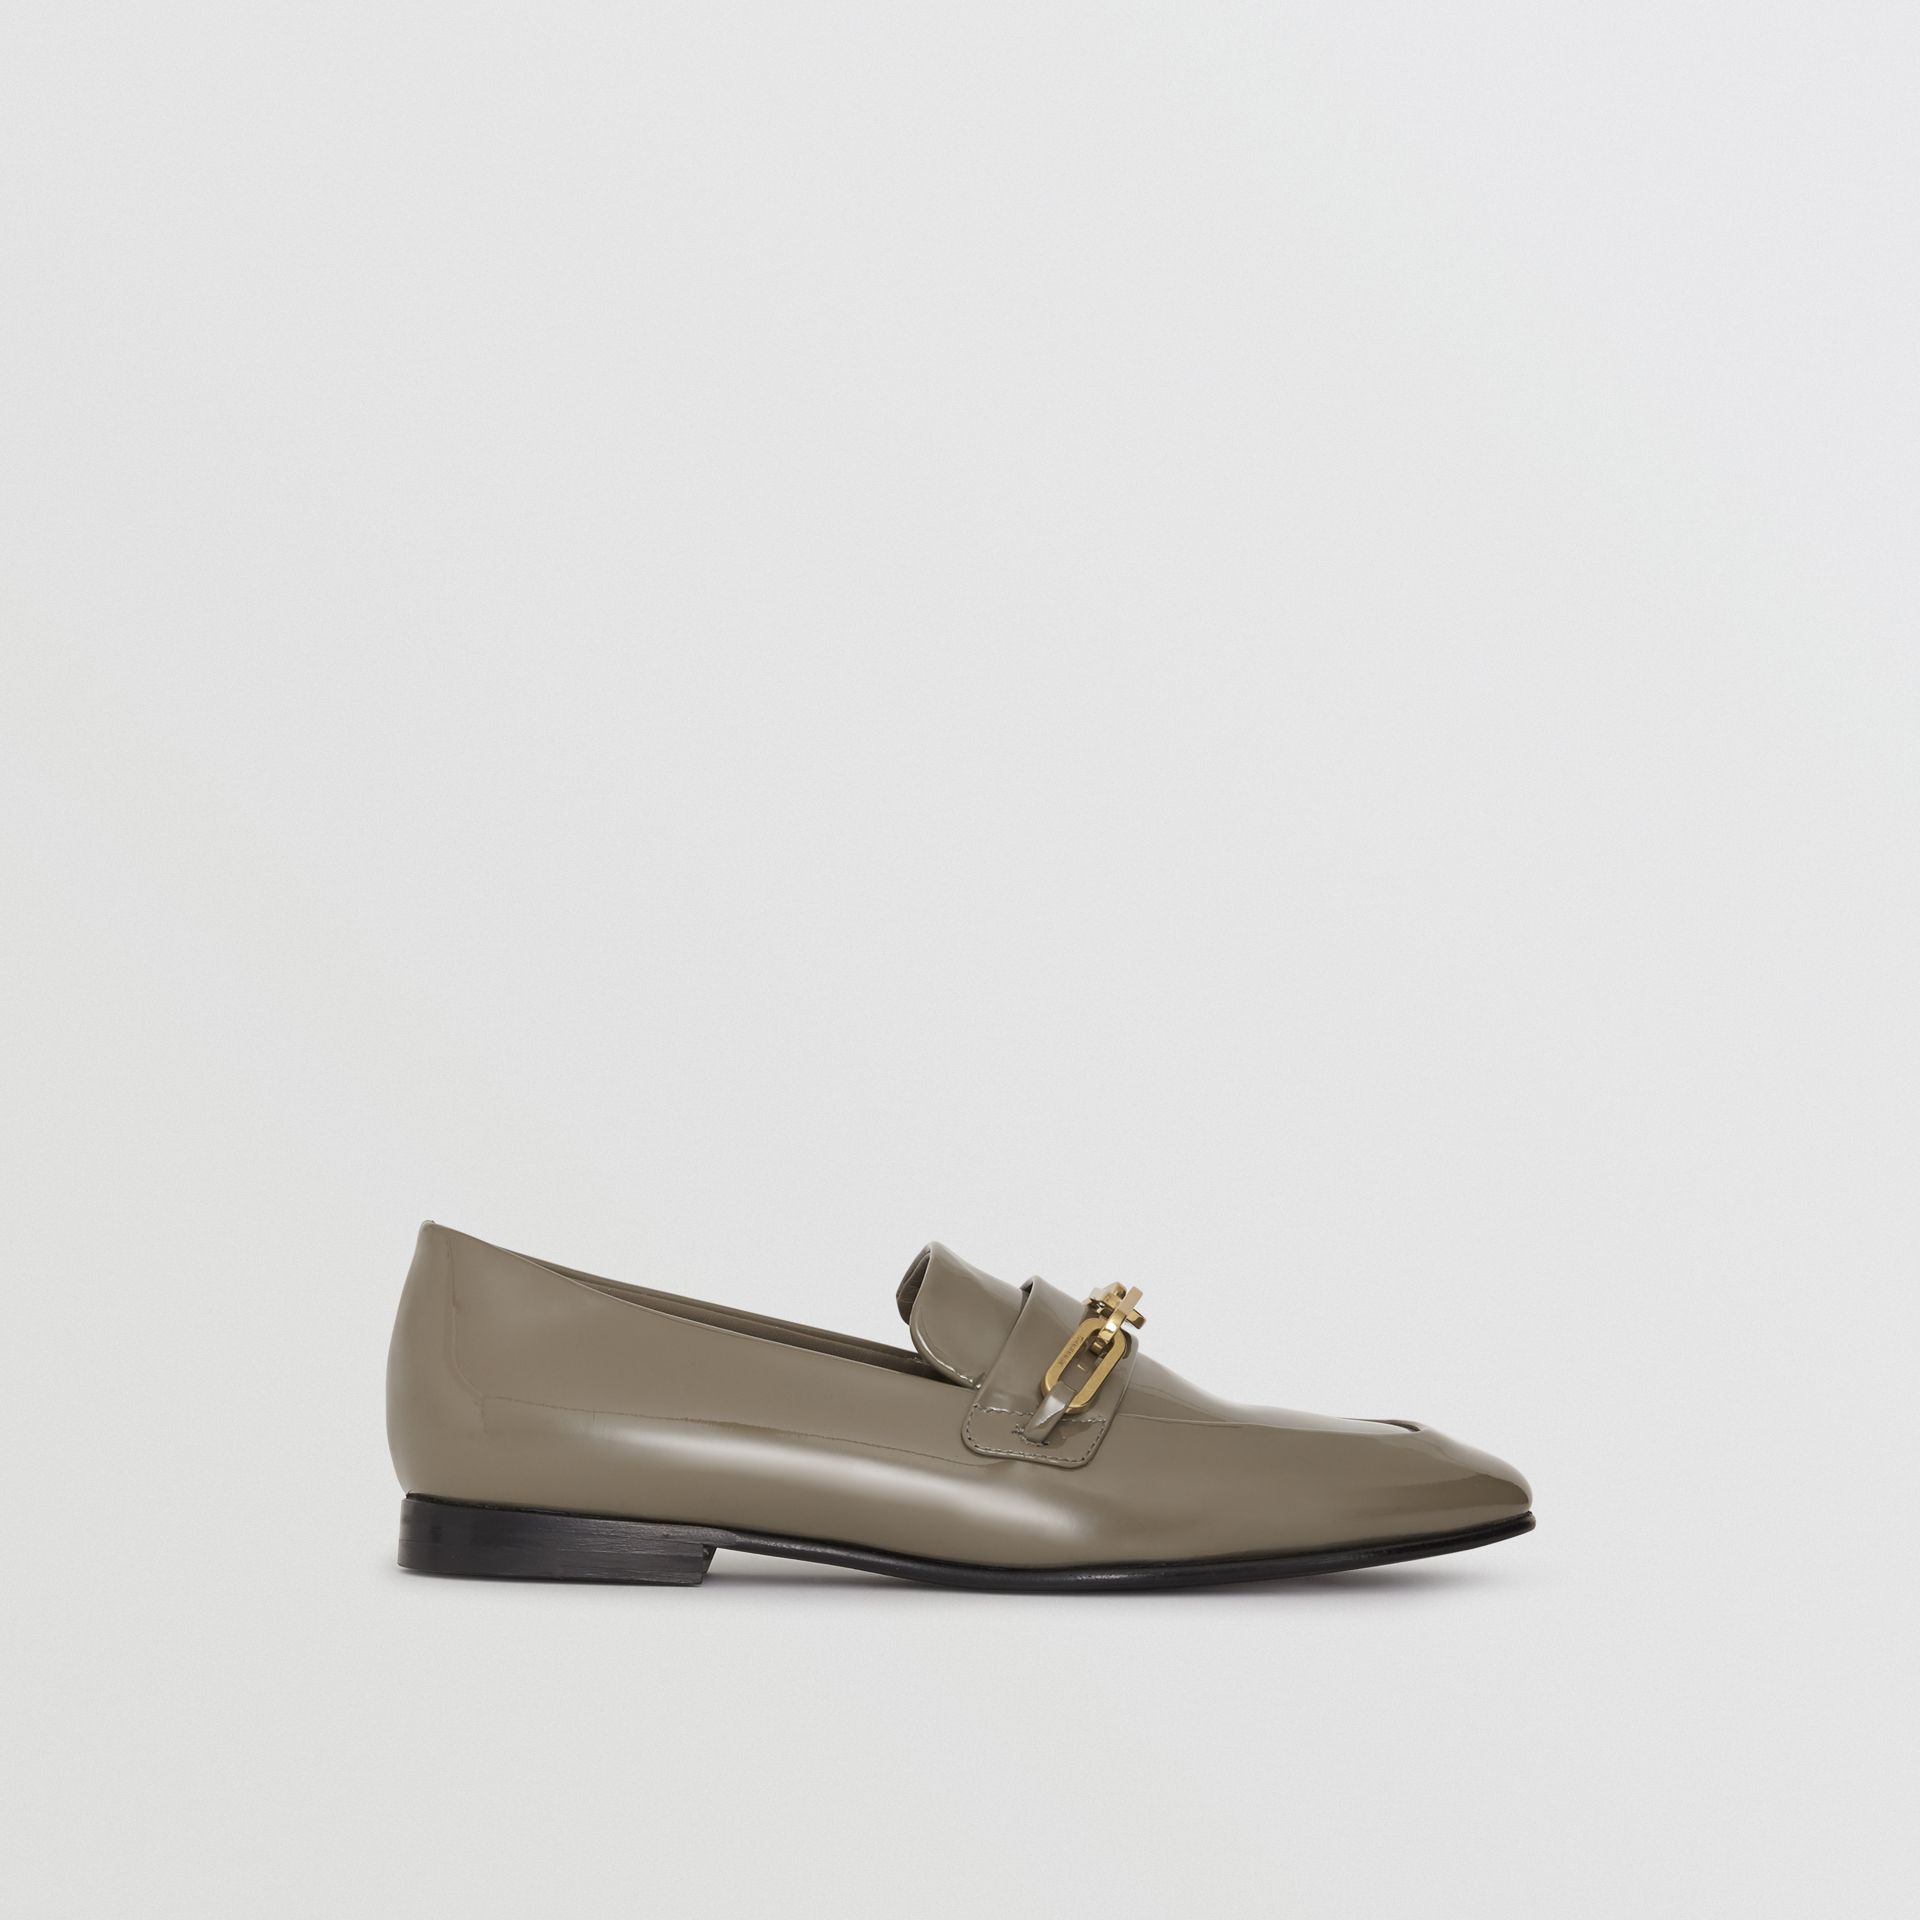 Link Detail Patent Leather Loafers in Taupe Grey - Women | Burberry Hong Kong - gallery image 5